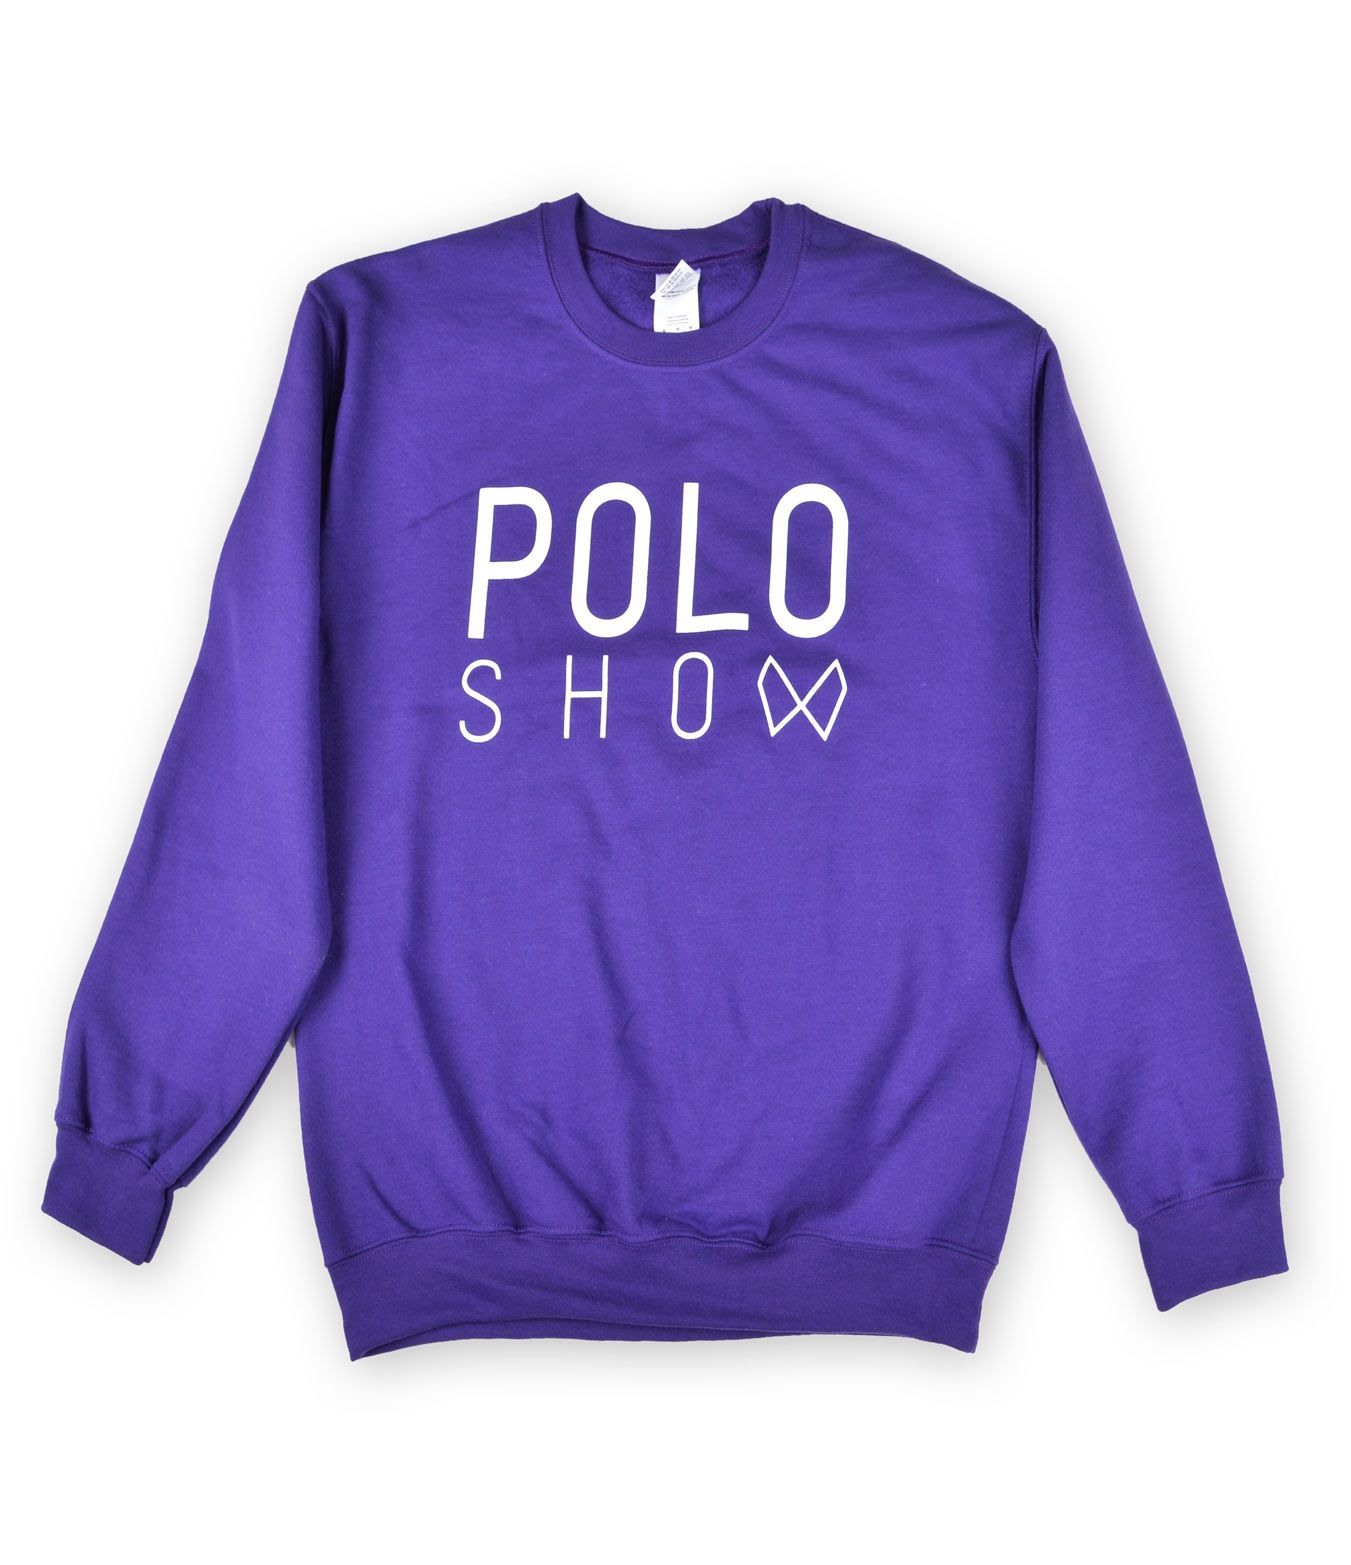 Poloshow sweater purple 1